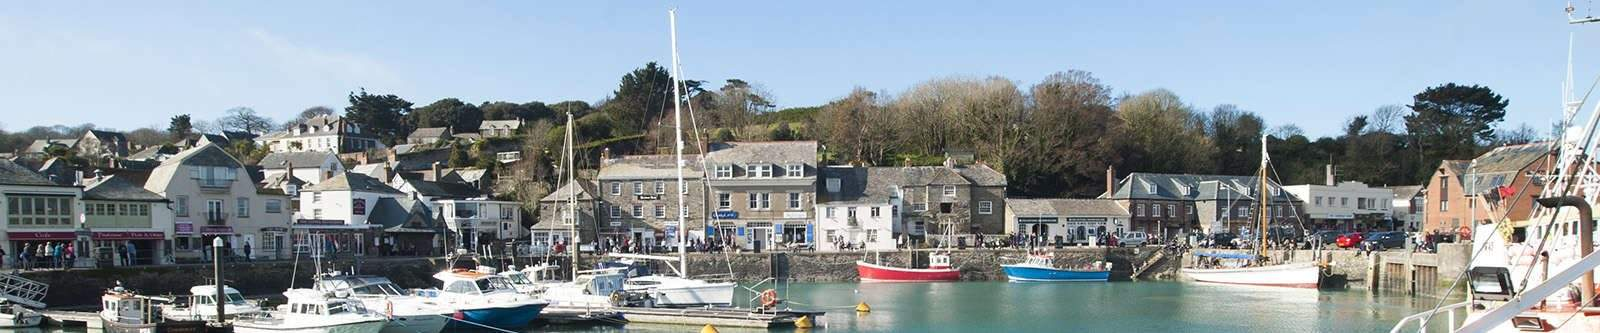 Padstow town by harbour